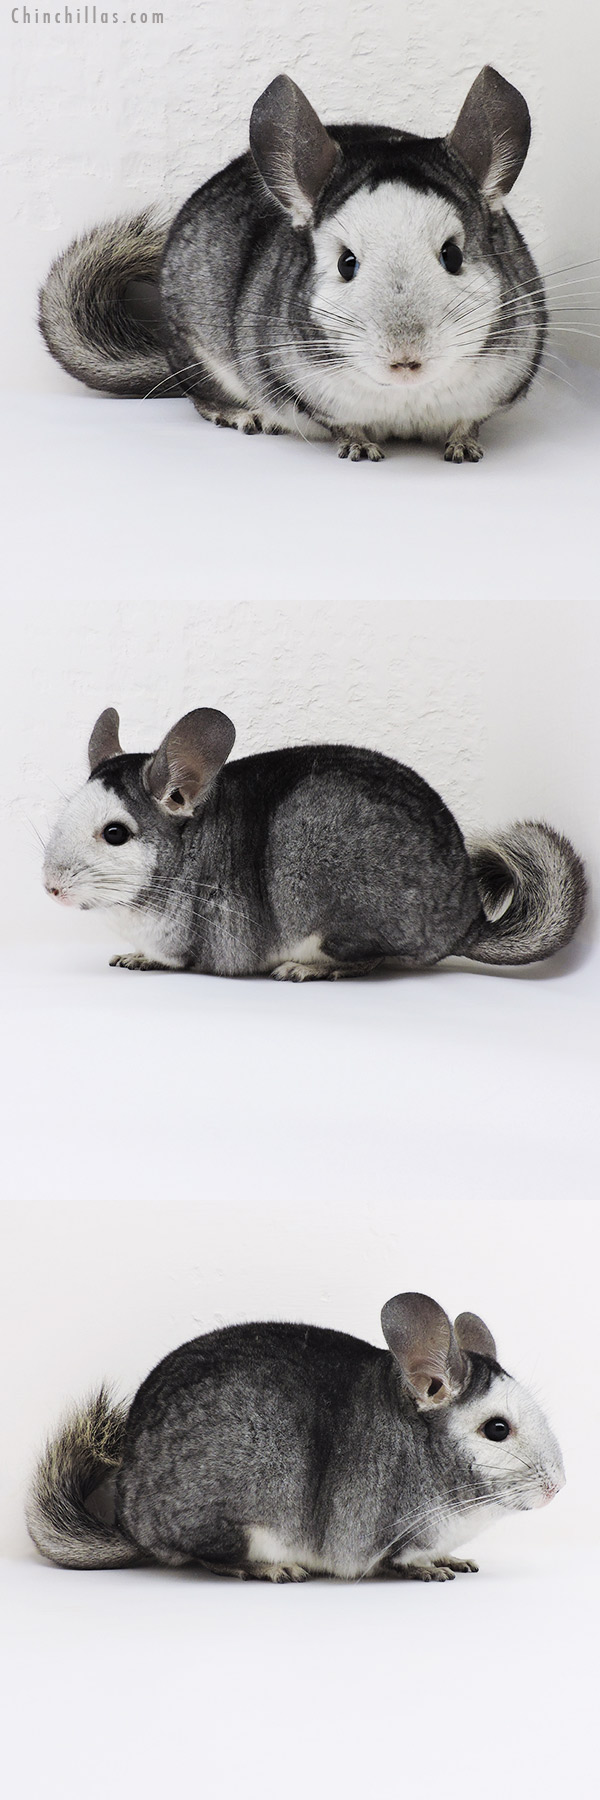 17001 Extreme 'Reverse Mosaic' Female Chinchilla